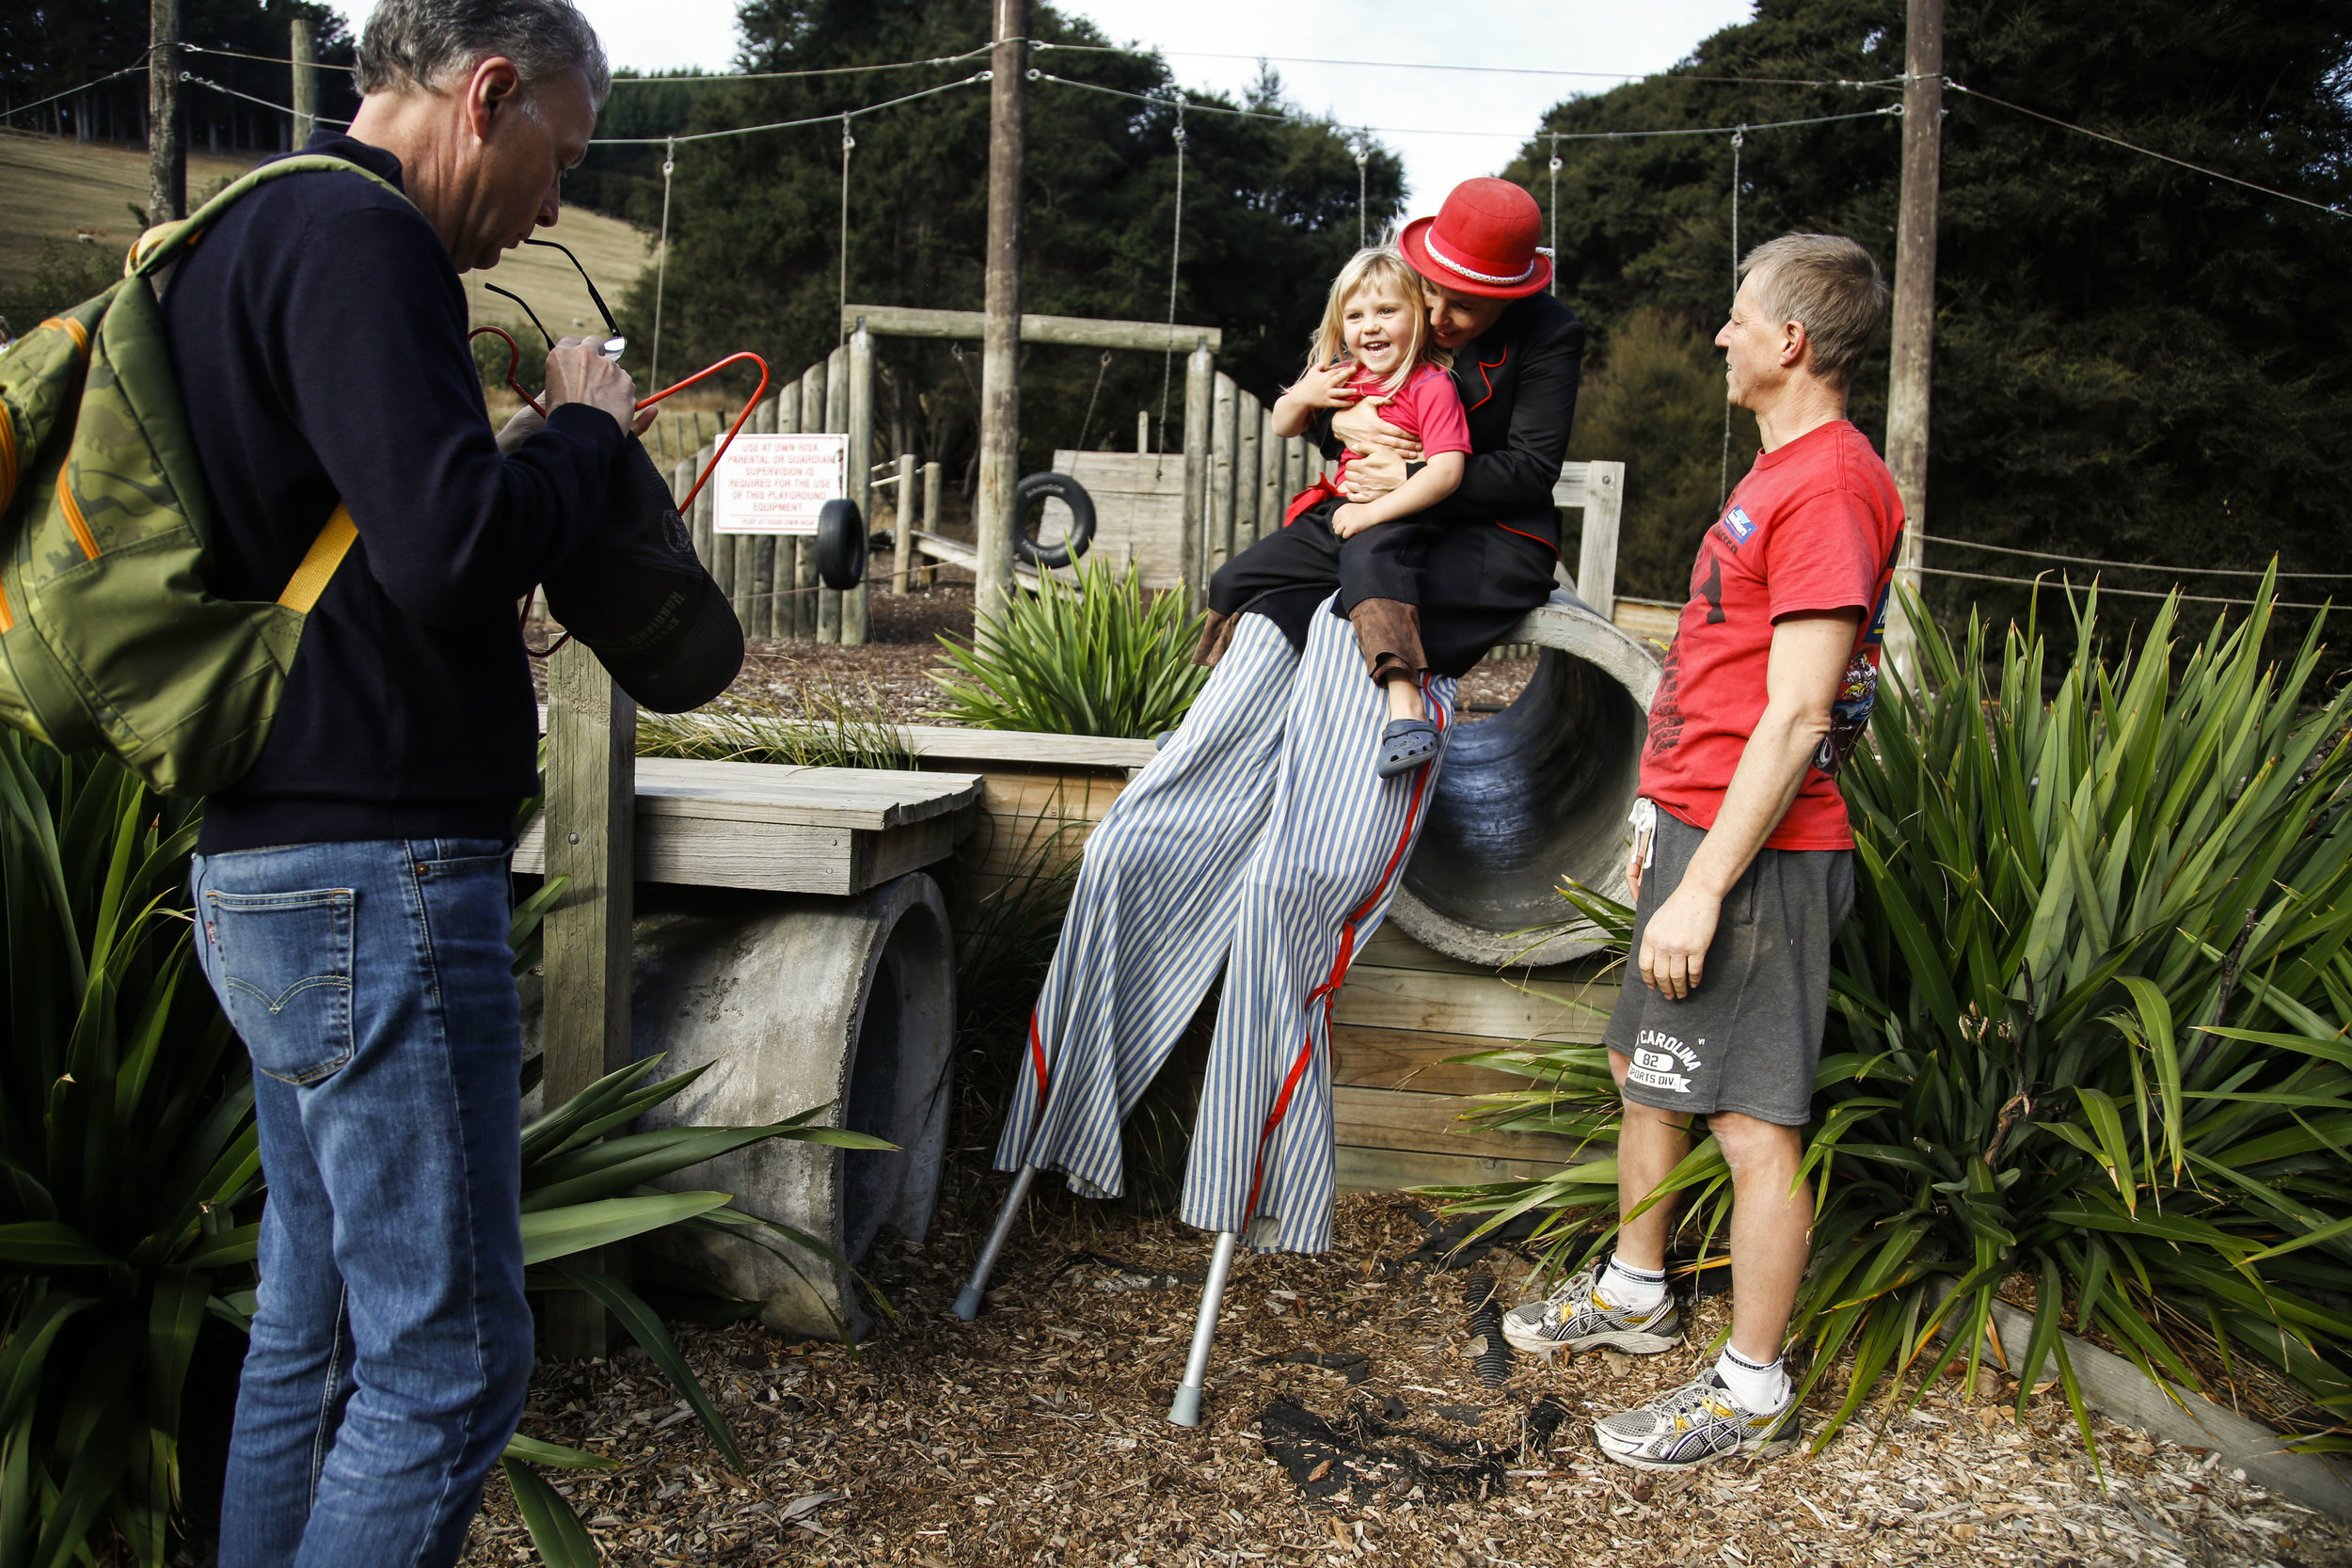 "Neil Wooten (left), Ricken's boyfriend, wipes his glasses as Auriel and Olivia Ricken (center) laugh together at Orton Bradley Park in Charteris Bay, NZ on May 14, 2016. ""My son is so proud of his mum. He goes through the kitchen and tries to balance everything on his nose because he's seen me do it. It's very sweet,"" says Ricken. Wooten and Ricken were also accompanied by Auriel's father, Andre Heppelthwaite (right). Ricken and Heppelthwaithe try to maintain a good relationship for Auriel."